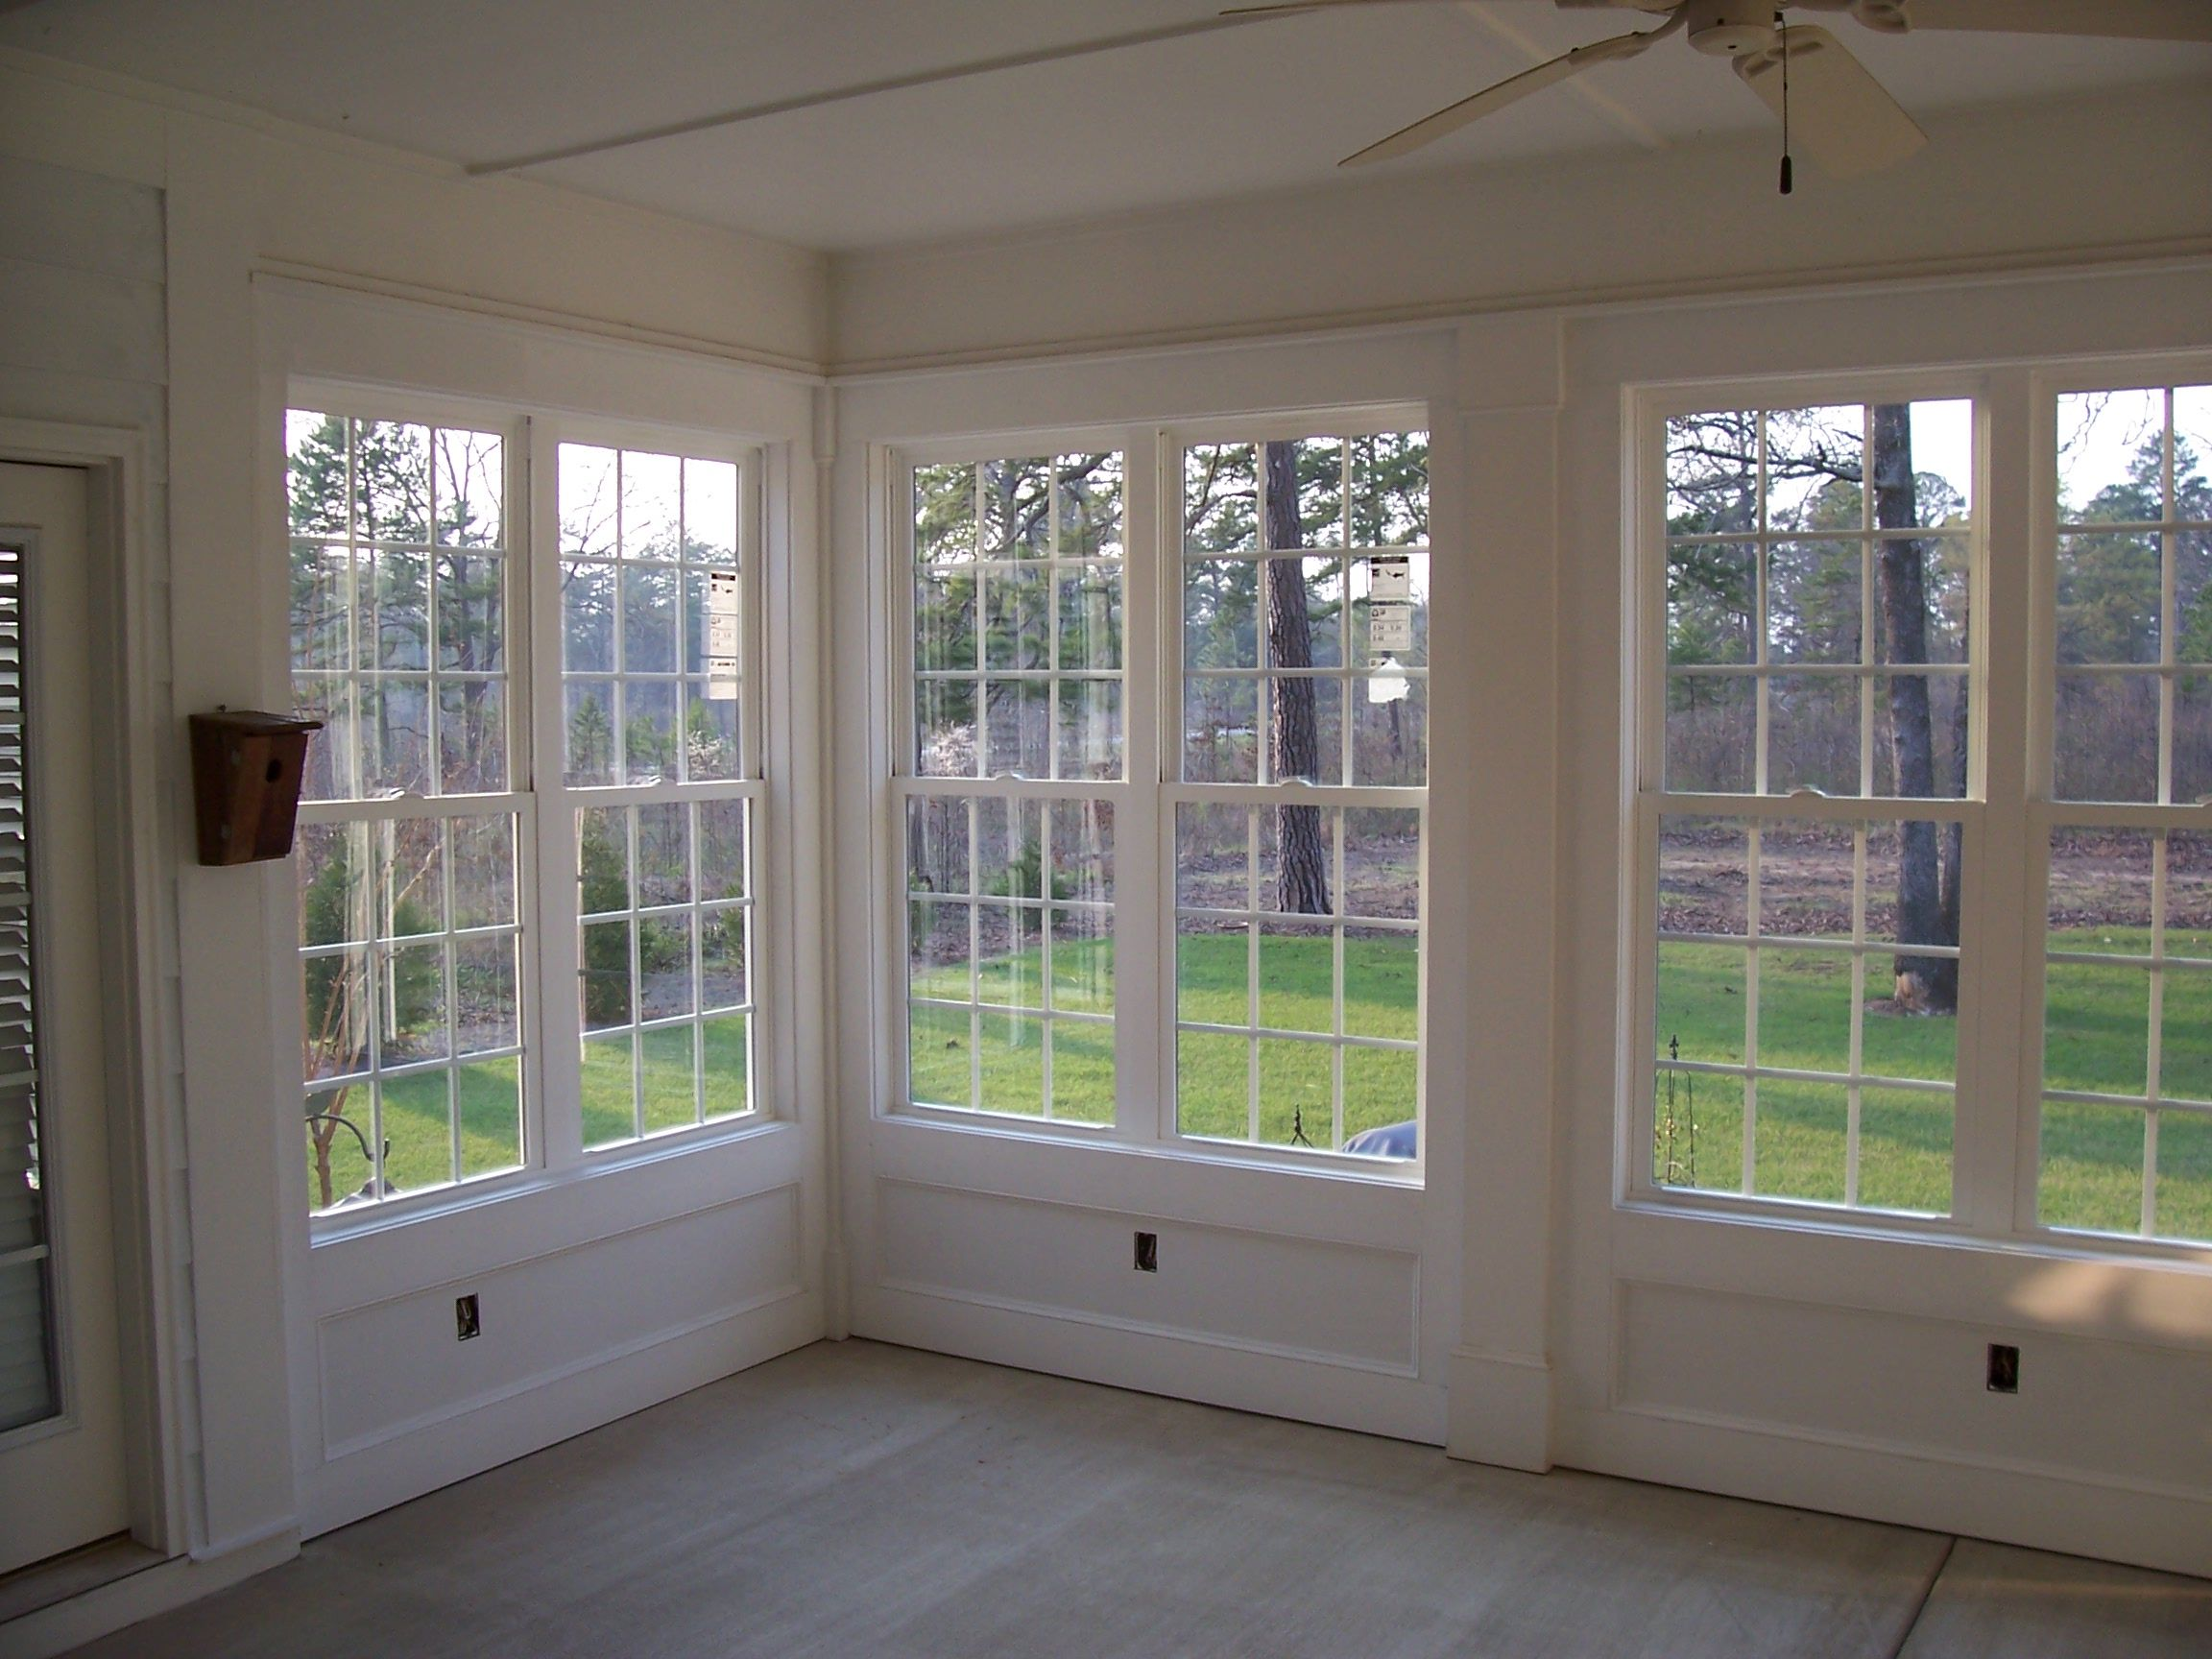 Remodel Project Sun Porch Turned Into Sunroom Sun Porch Beautiful Wall Of Windows Interior